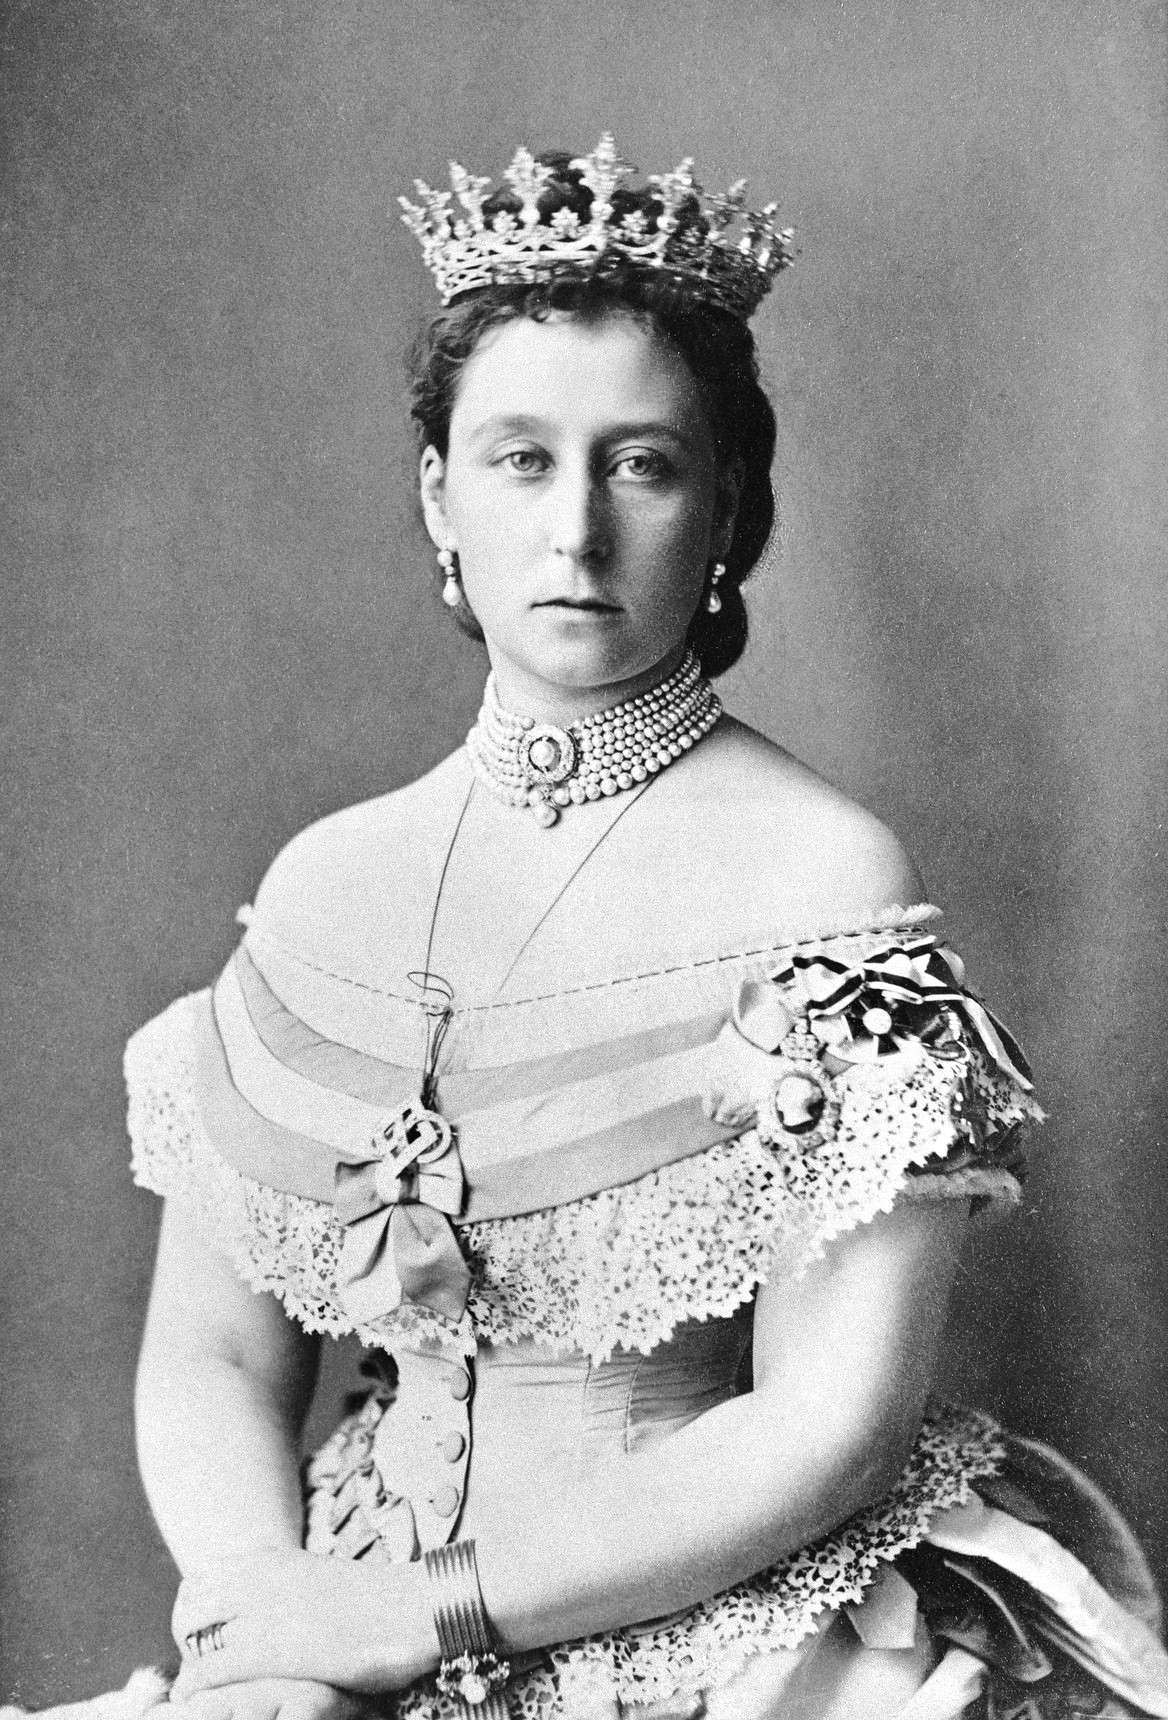 Queen Victoria's Daughter: Princess Alice of the United Kingdom